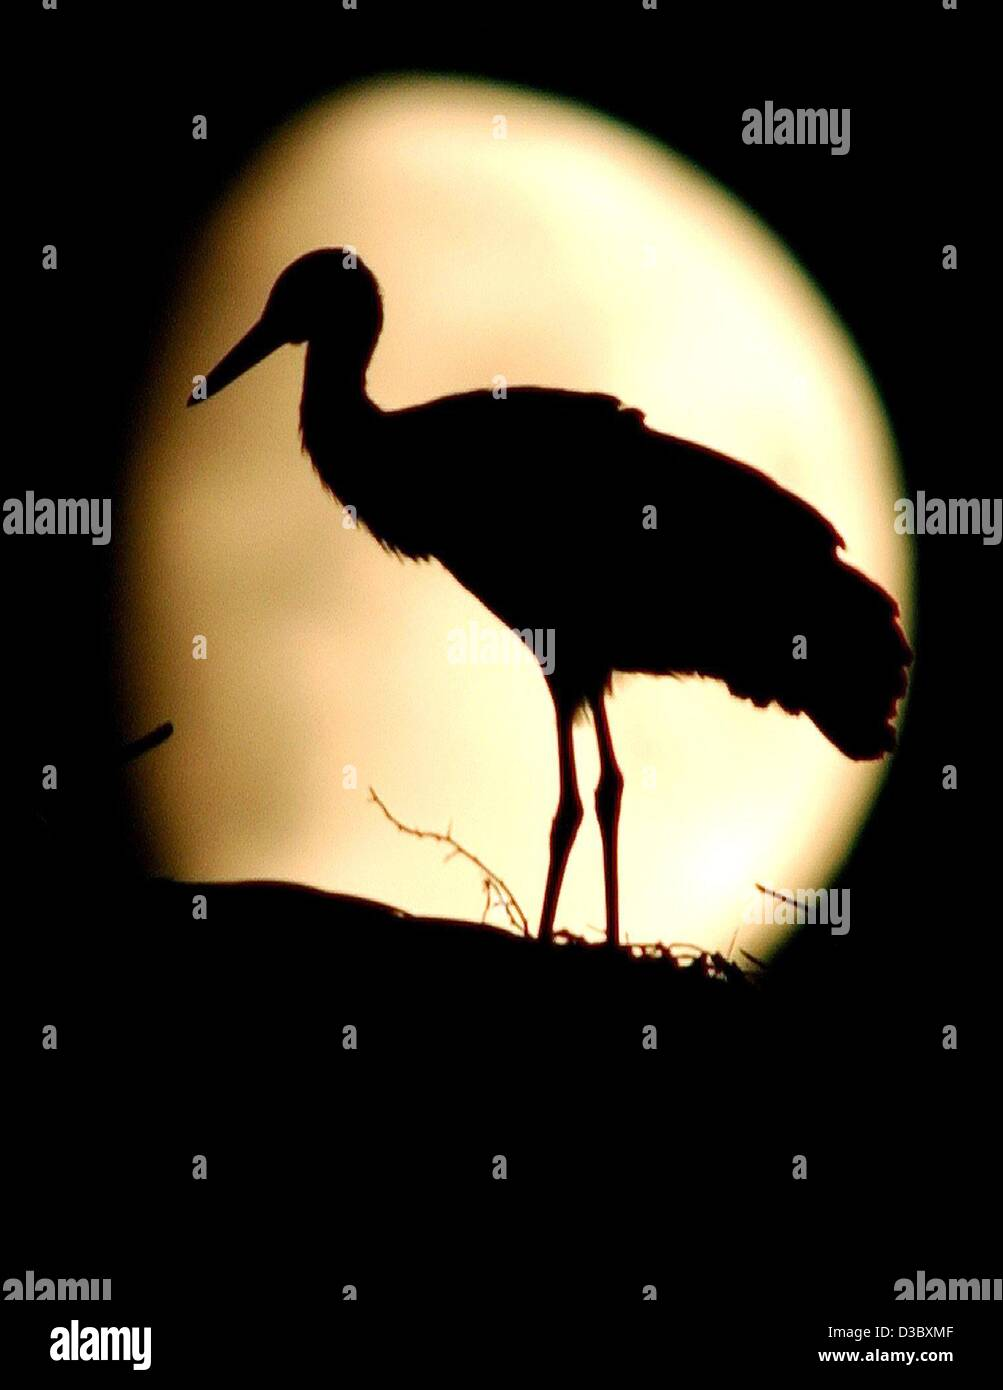 (dpa) - The silhouette of a young stork appears in front of the beaming moon in Sieversdorf, Germany, 7 August 2003. - Stock Image